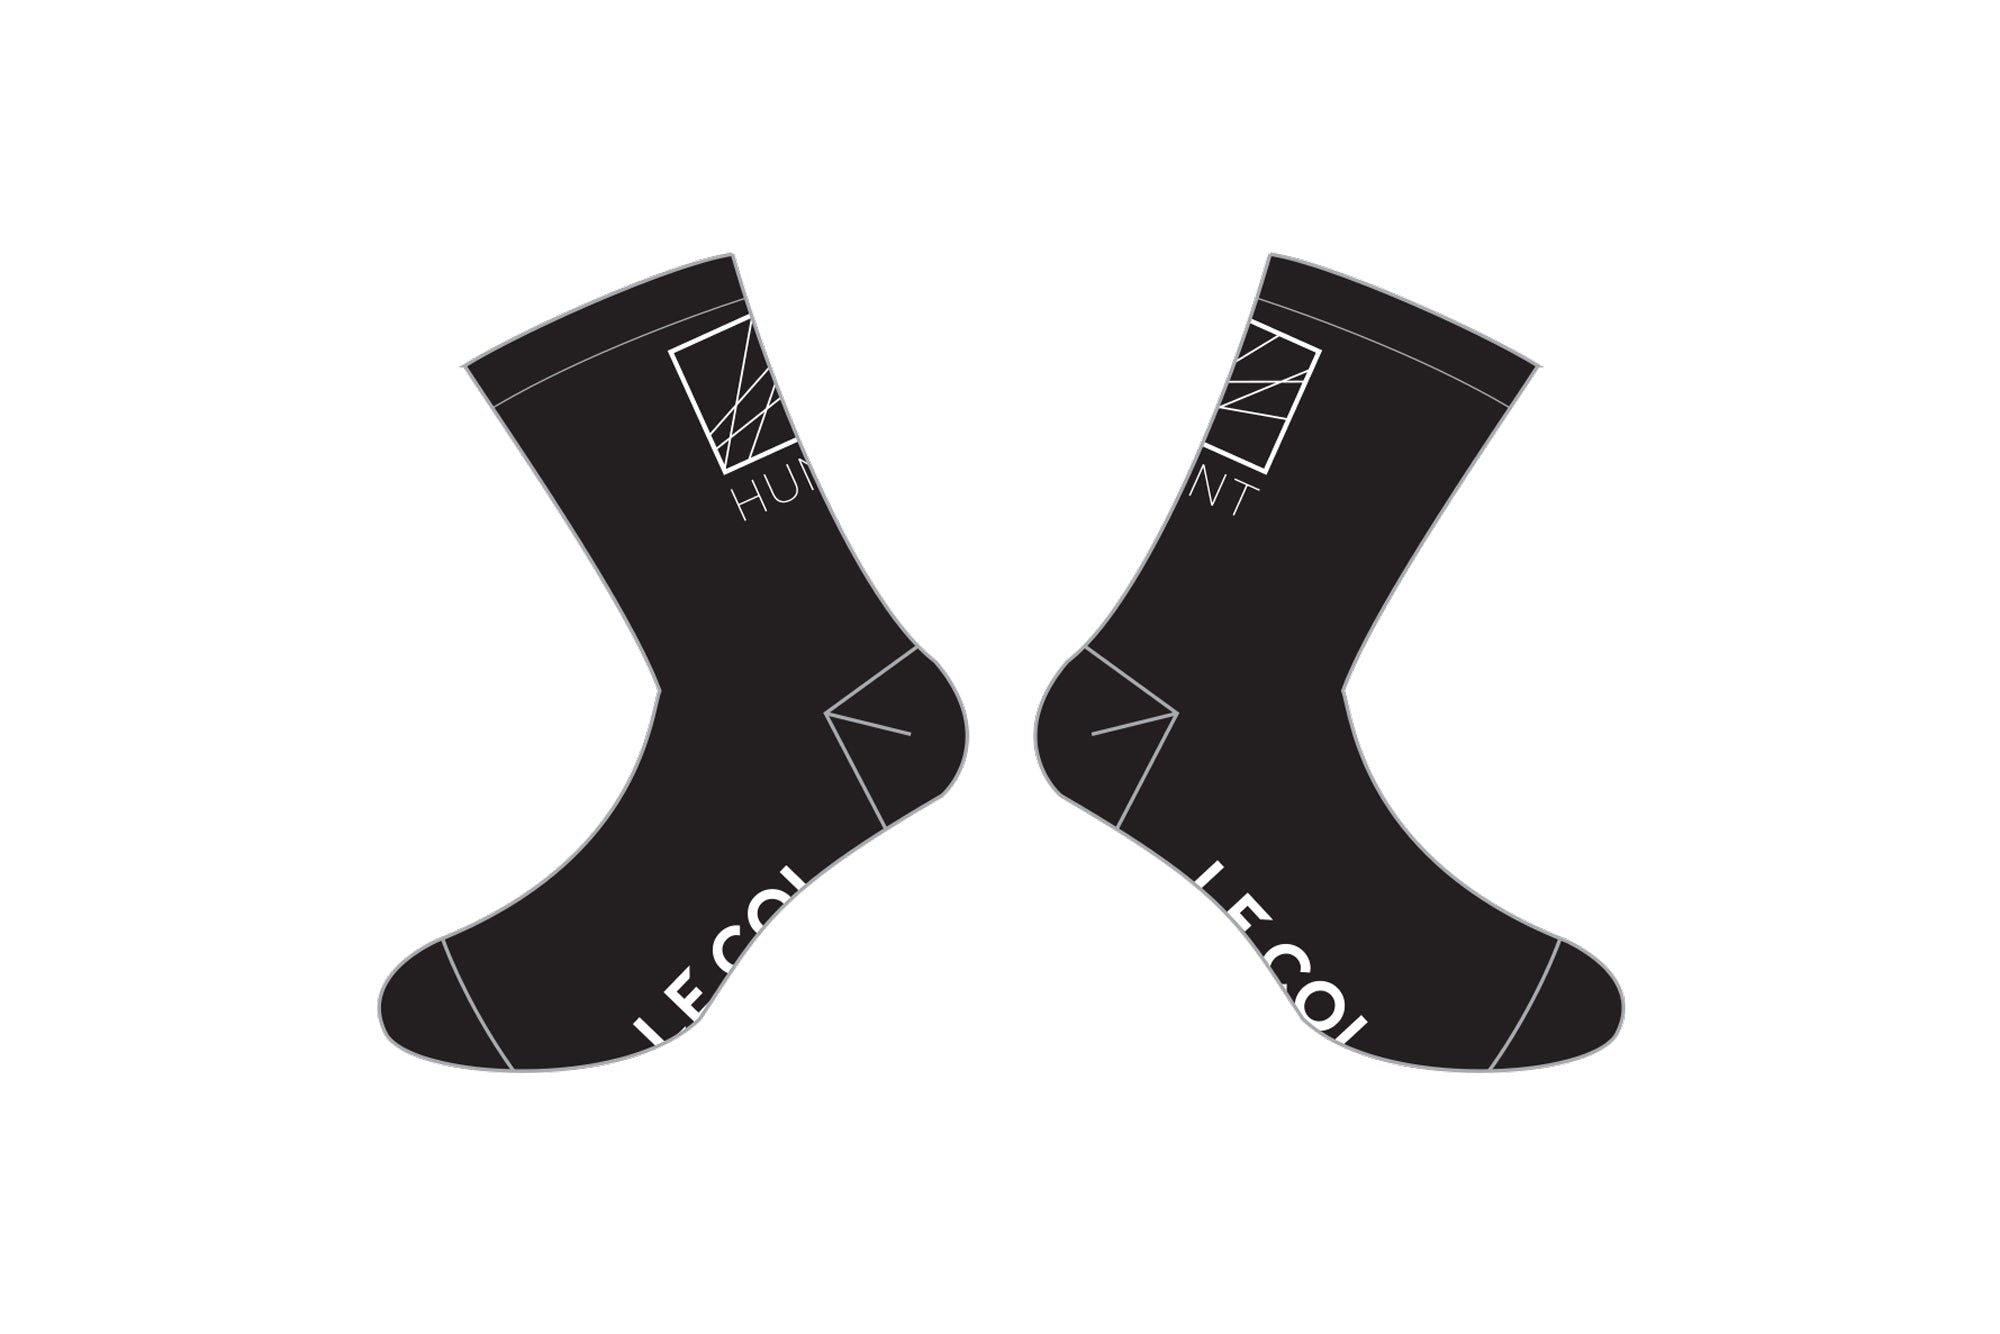 HUNT Le Col Cycling Socks